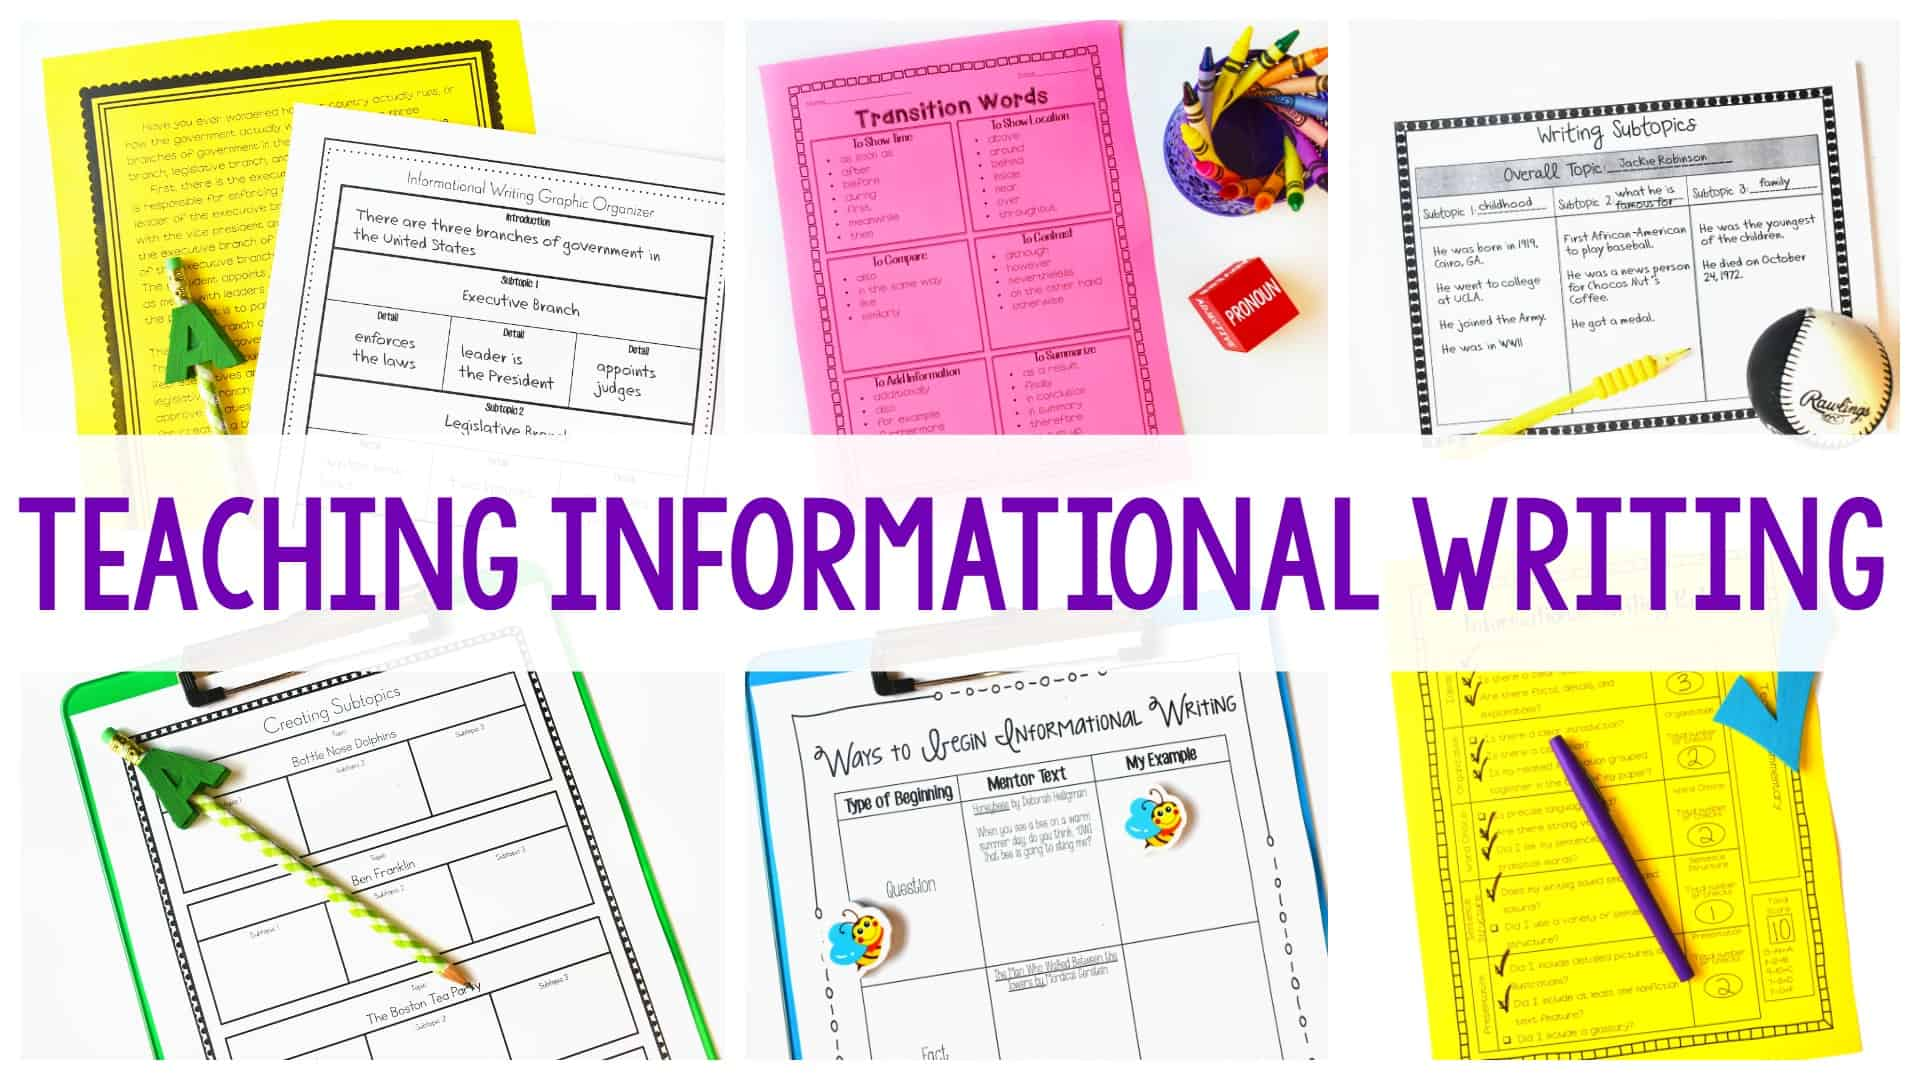 hight resolution of Informational Writing - Getting Started - Ashleigh's Education Journey